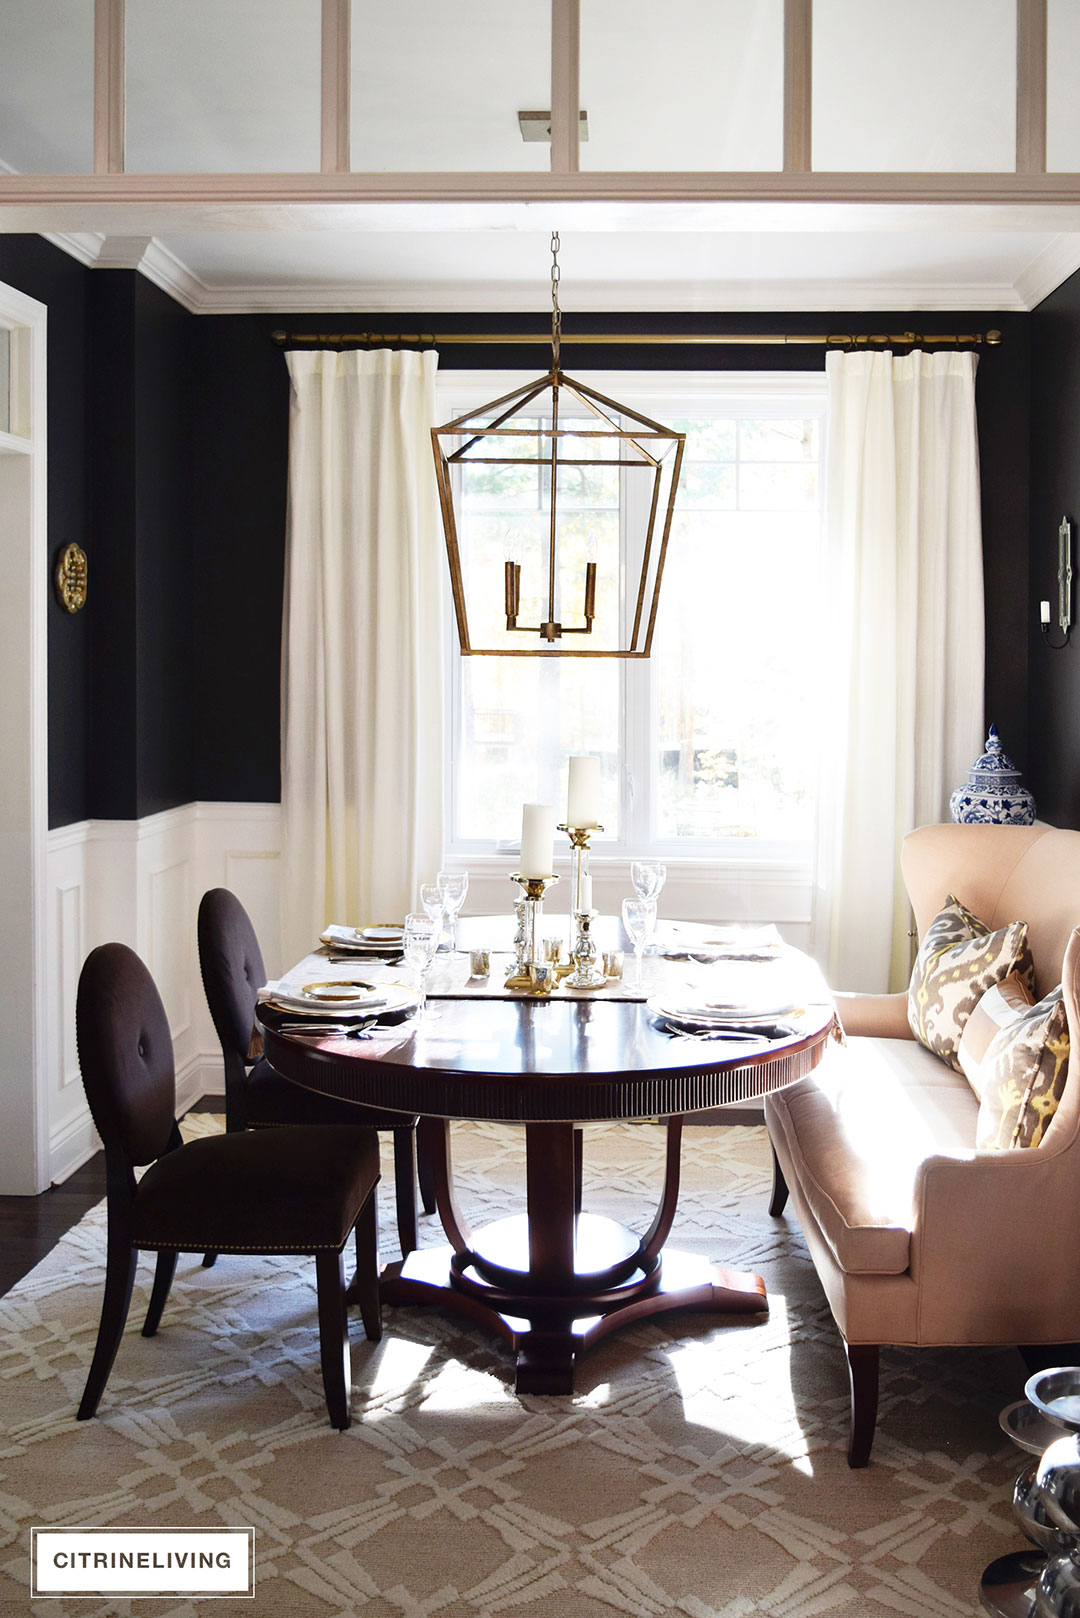 Citrineliving neutral dining room updates Room with black walls